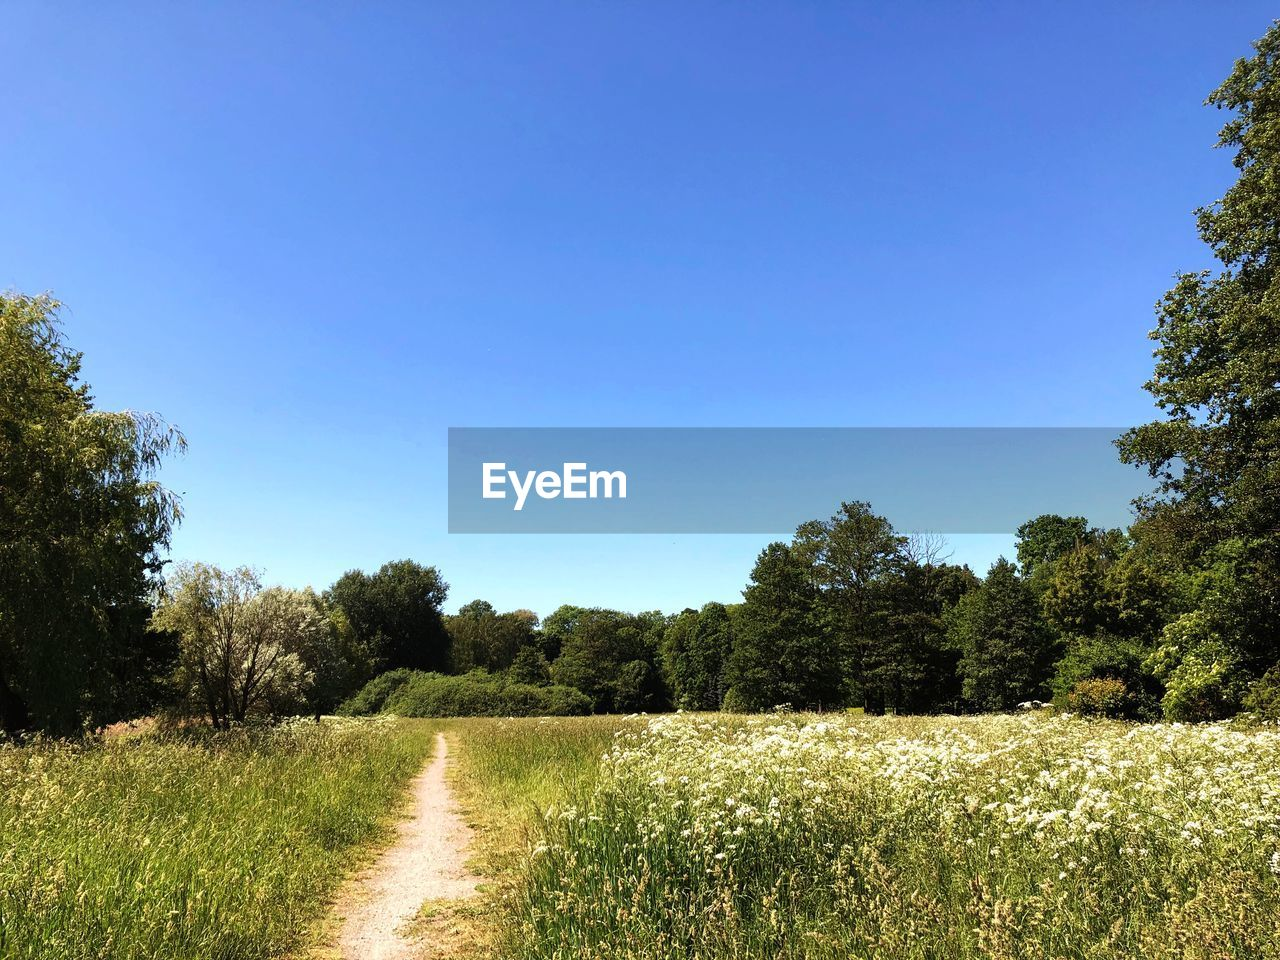 plant, sky, tree, tranquility, tranquil scene, growth, beauty in nature, nature, scenics - nature, landscape, clear sky, environment, day, land, field, grass, copy space, no people, sunlight, non-urban scene, outdoors